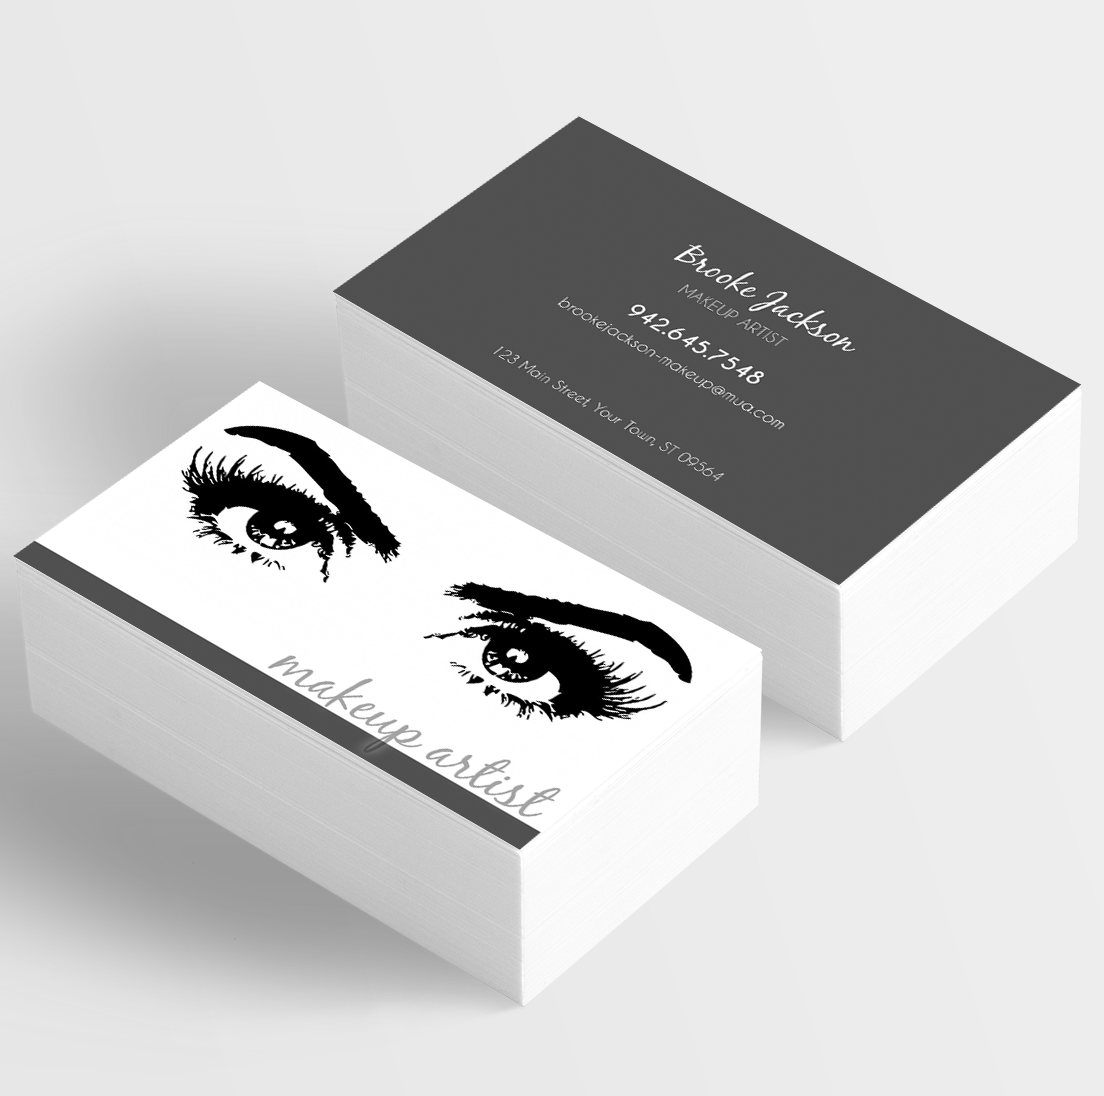 Artist business cards business card tips artist business cards templates artist business card tips visual artist business cards fine colourmoves